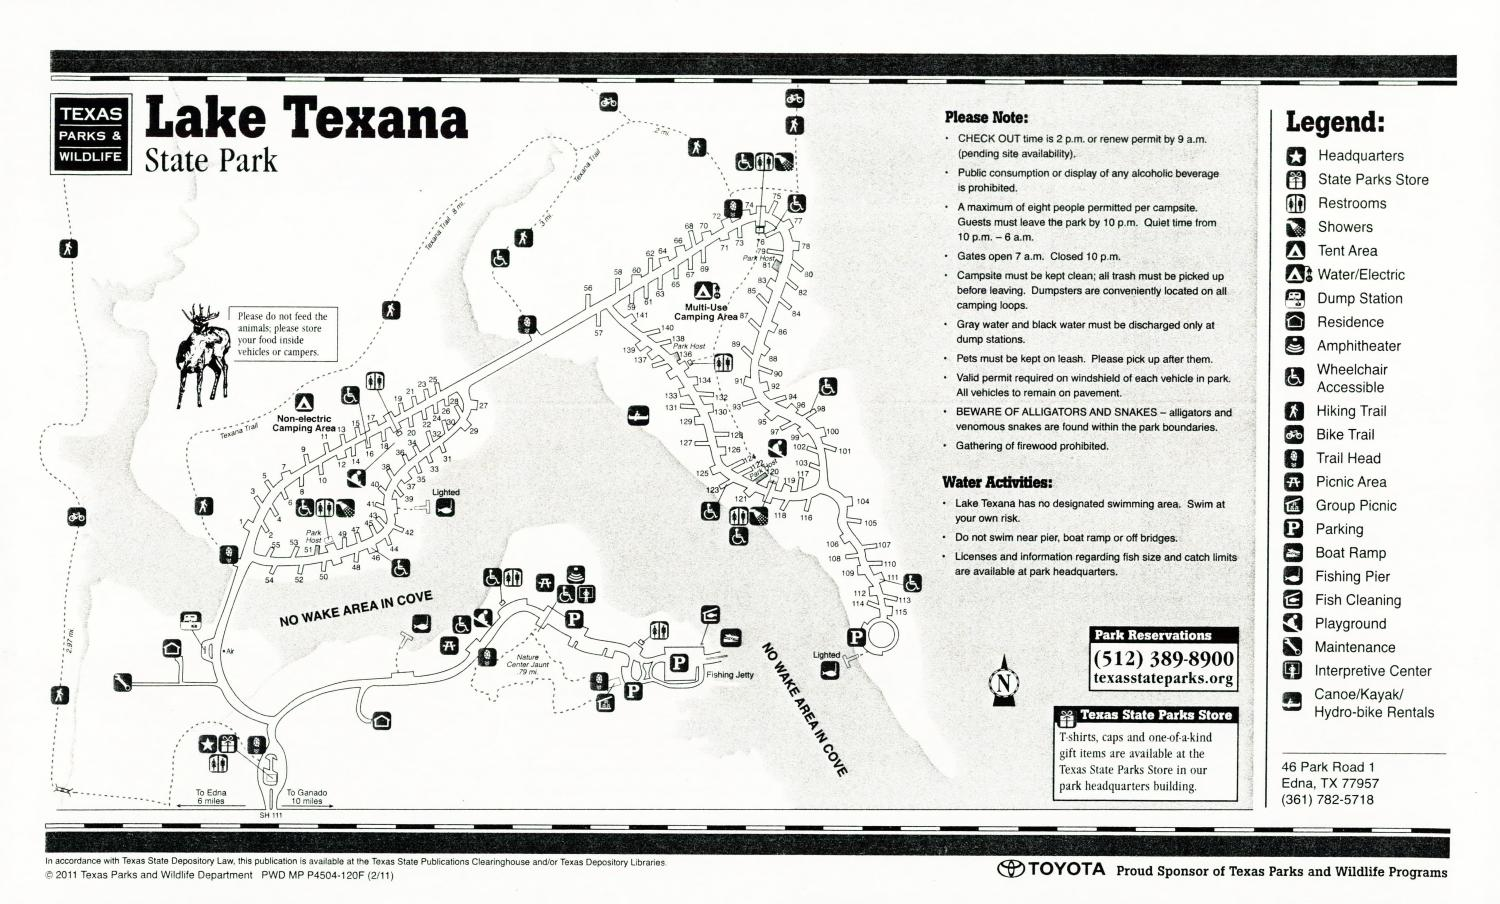 Lake Texana State Park, Map of the Lake Texana State Park outlining hiking trails and highlighting activities, facilities, and other features such as bathrooms, lodgings, water/electric, etc. It also contains general information for the park and for the Texas Parks and Wildlife Department.,